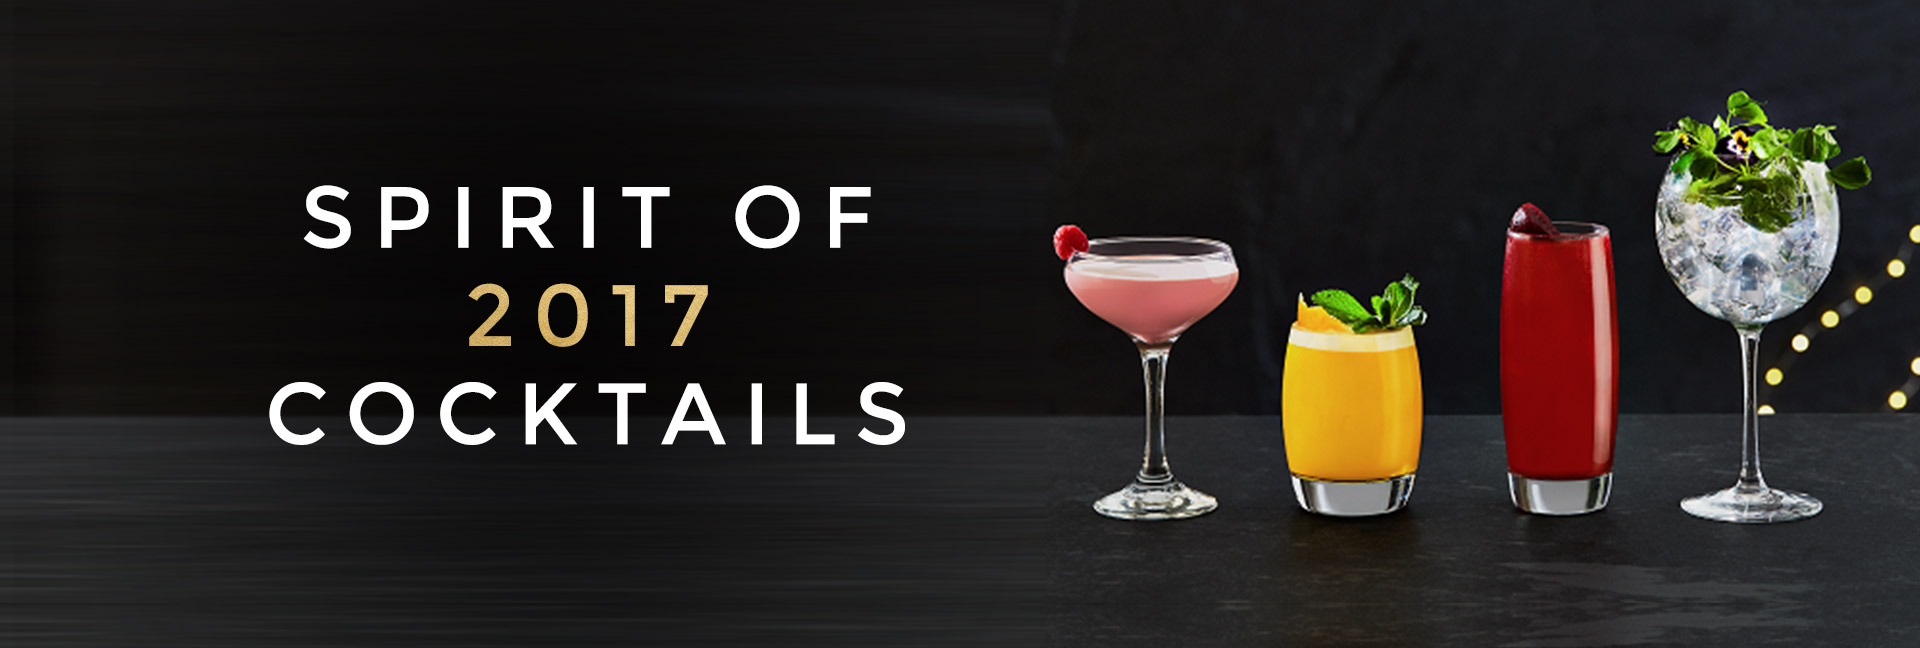 Spirit of 2017 cocktails at All Bar One Millennium Square Leeds